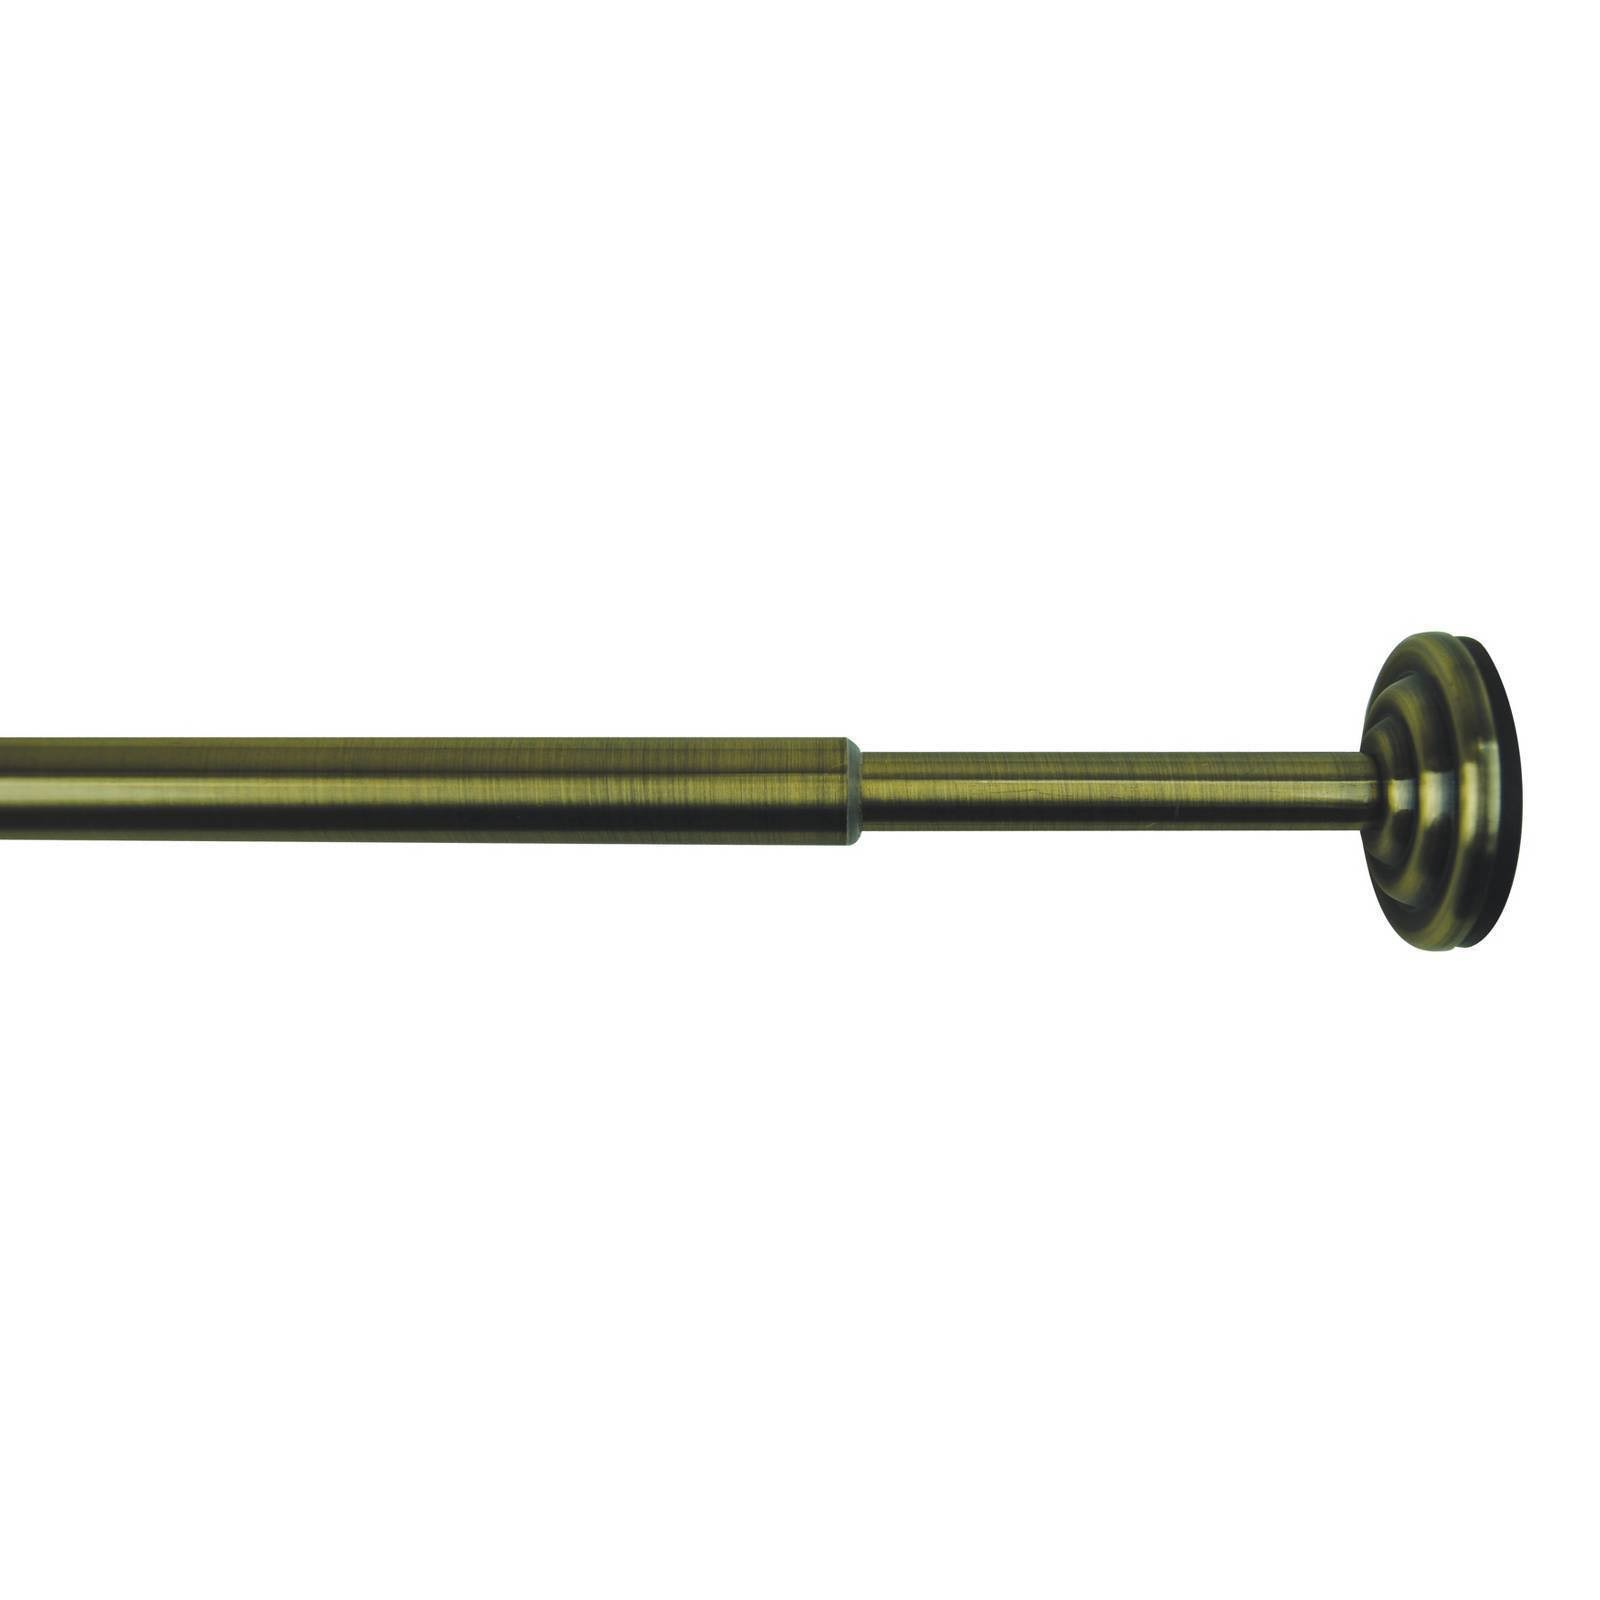 Versailles 1/2 in. Tension Rod